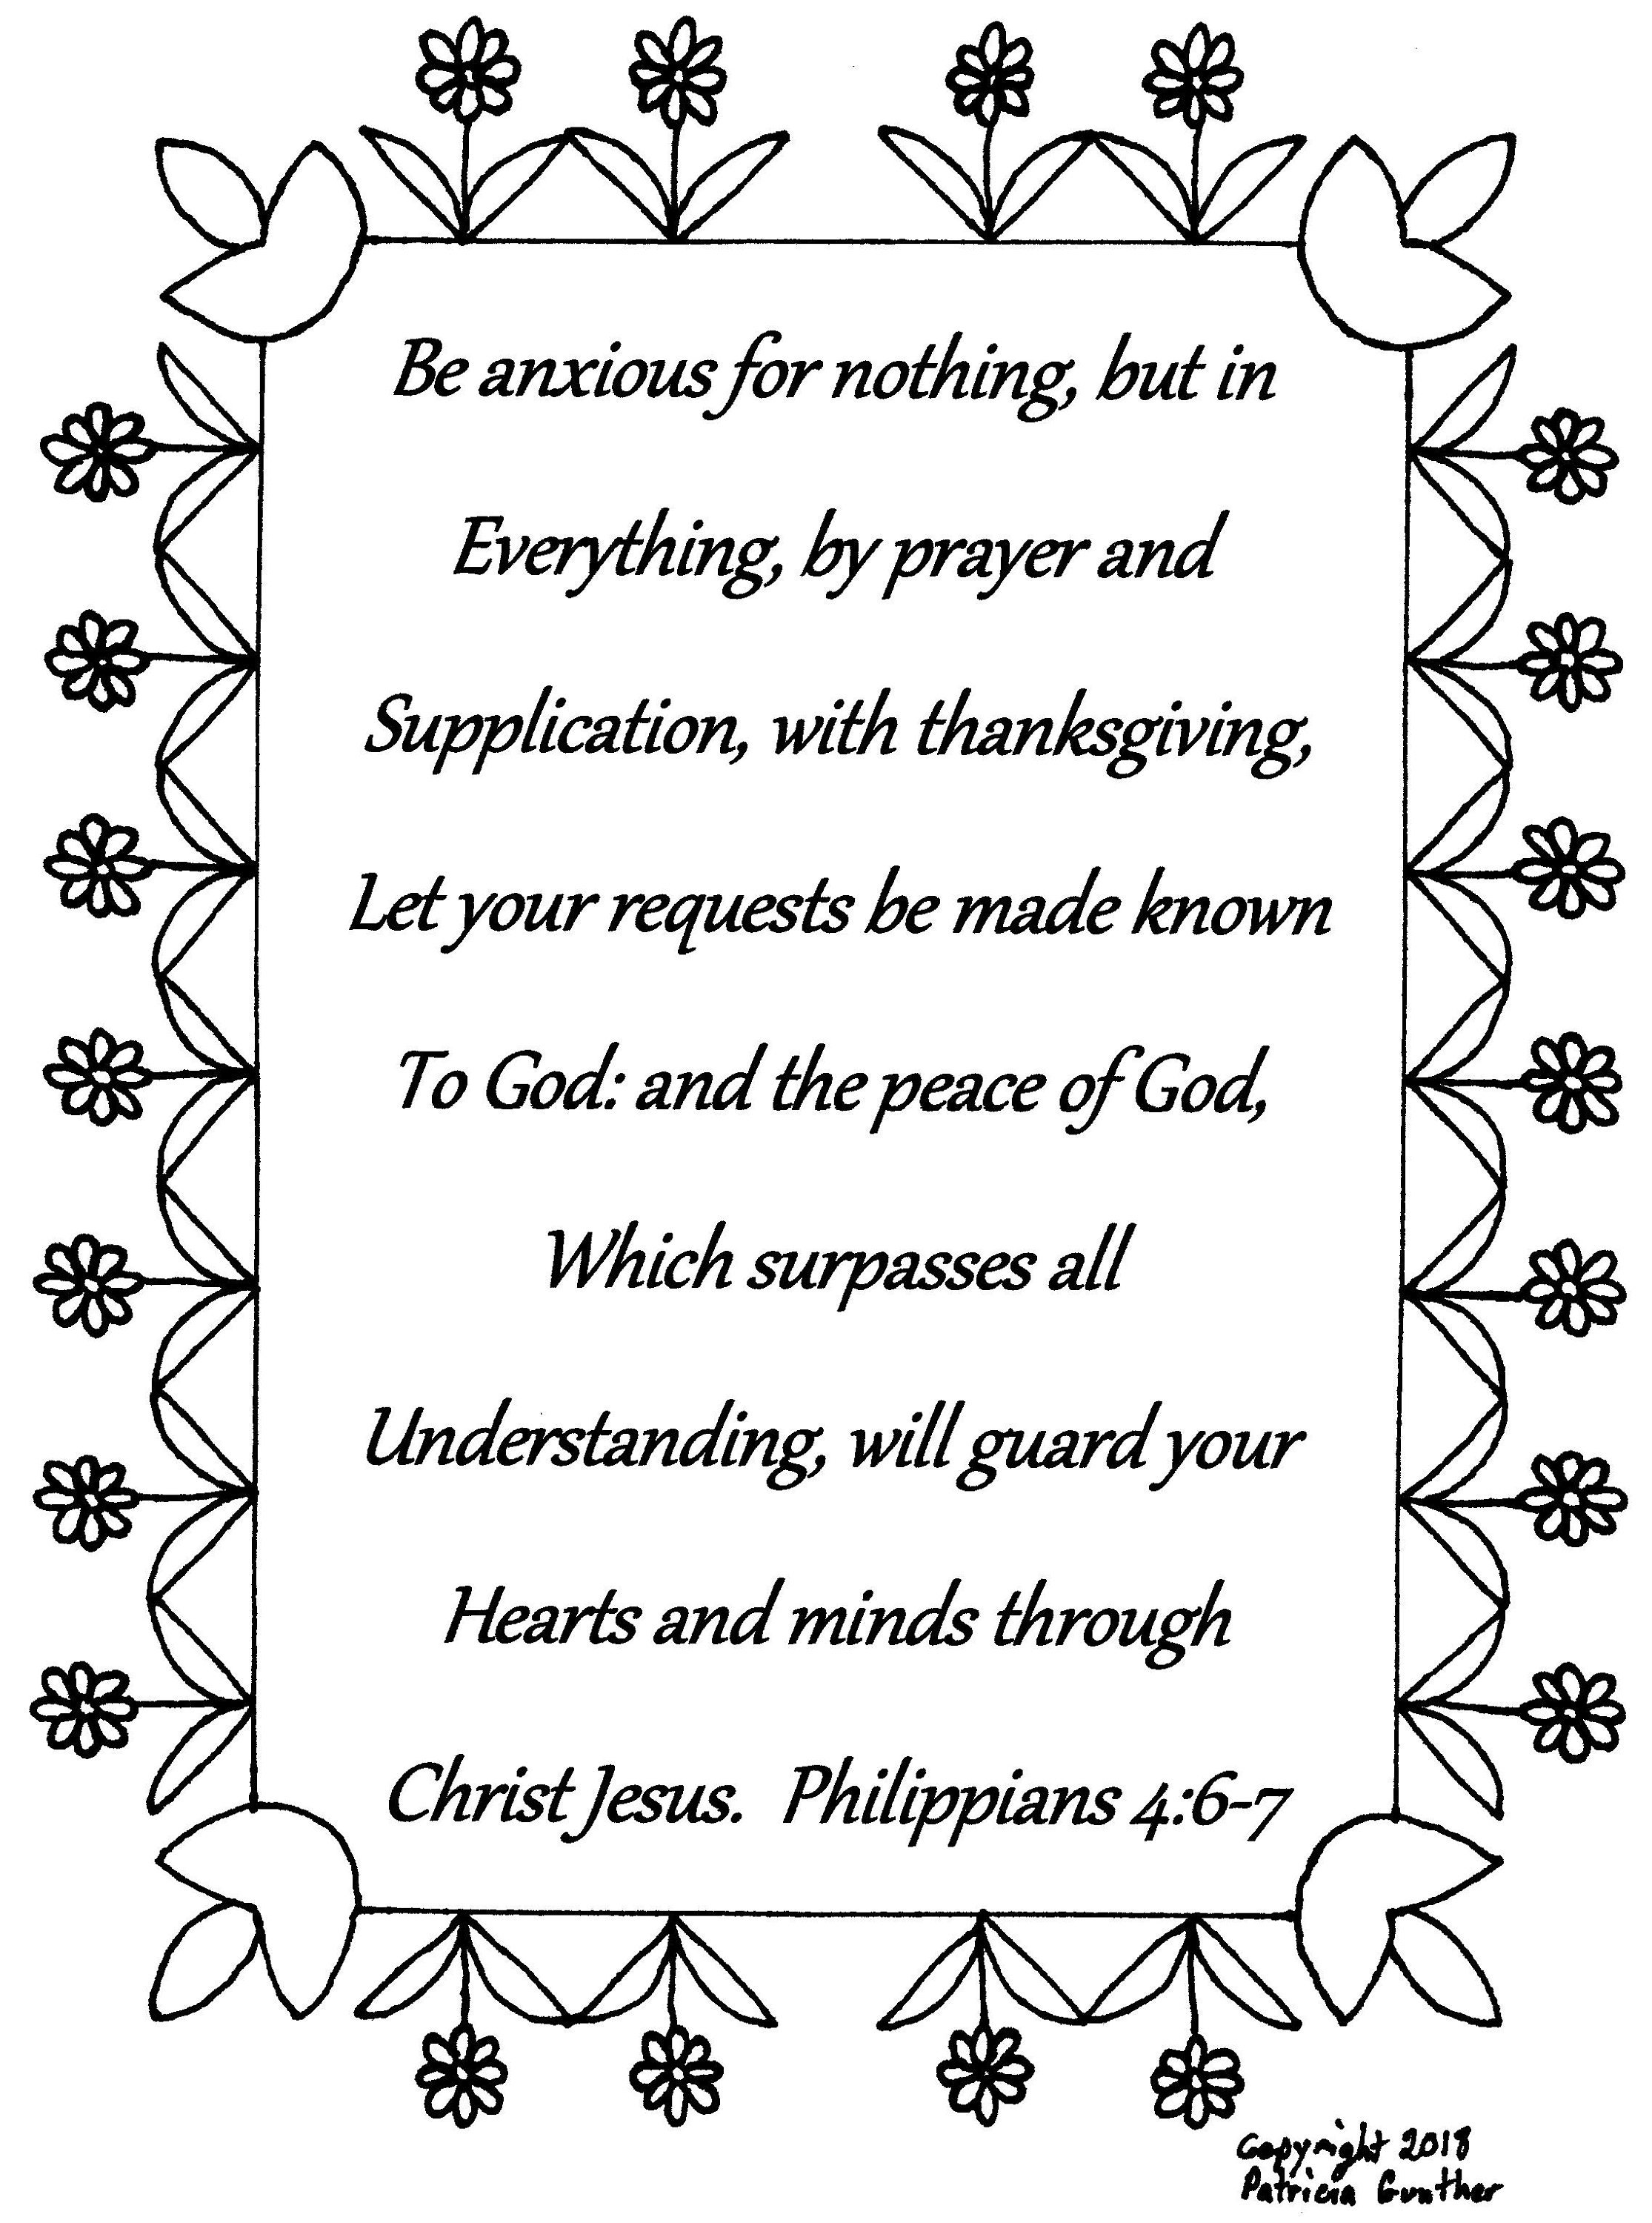 Be anxious for nothing...Philippians 4:6-7 Bible verse | Etsy